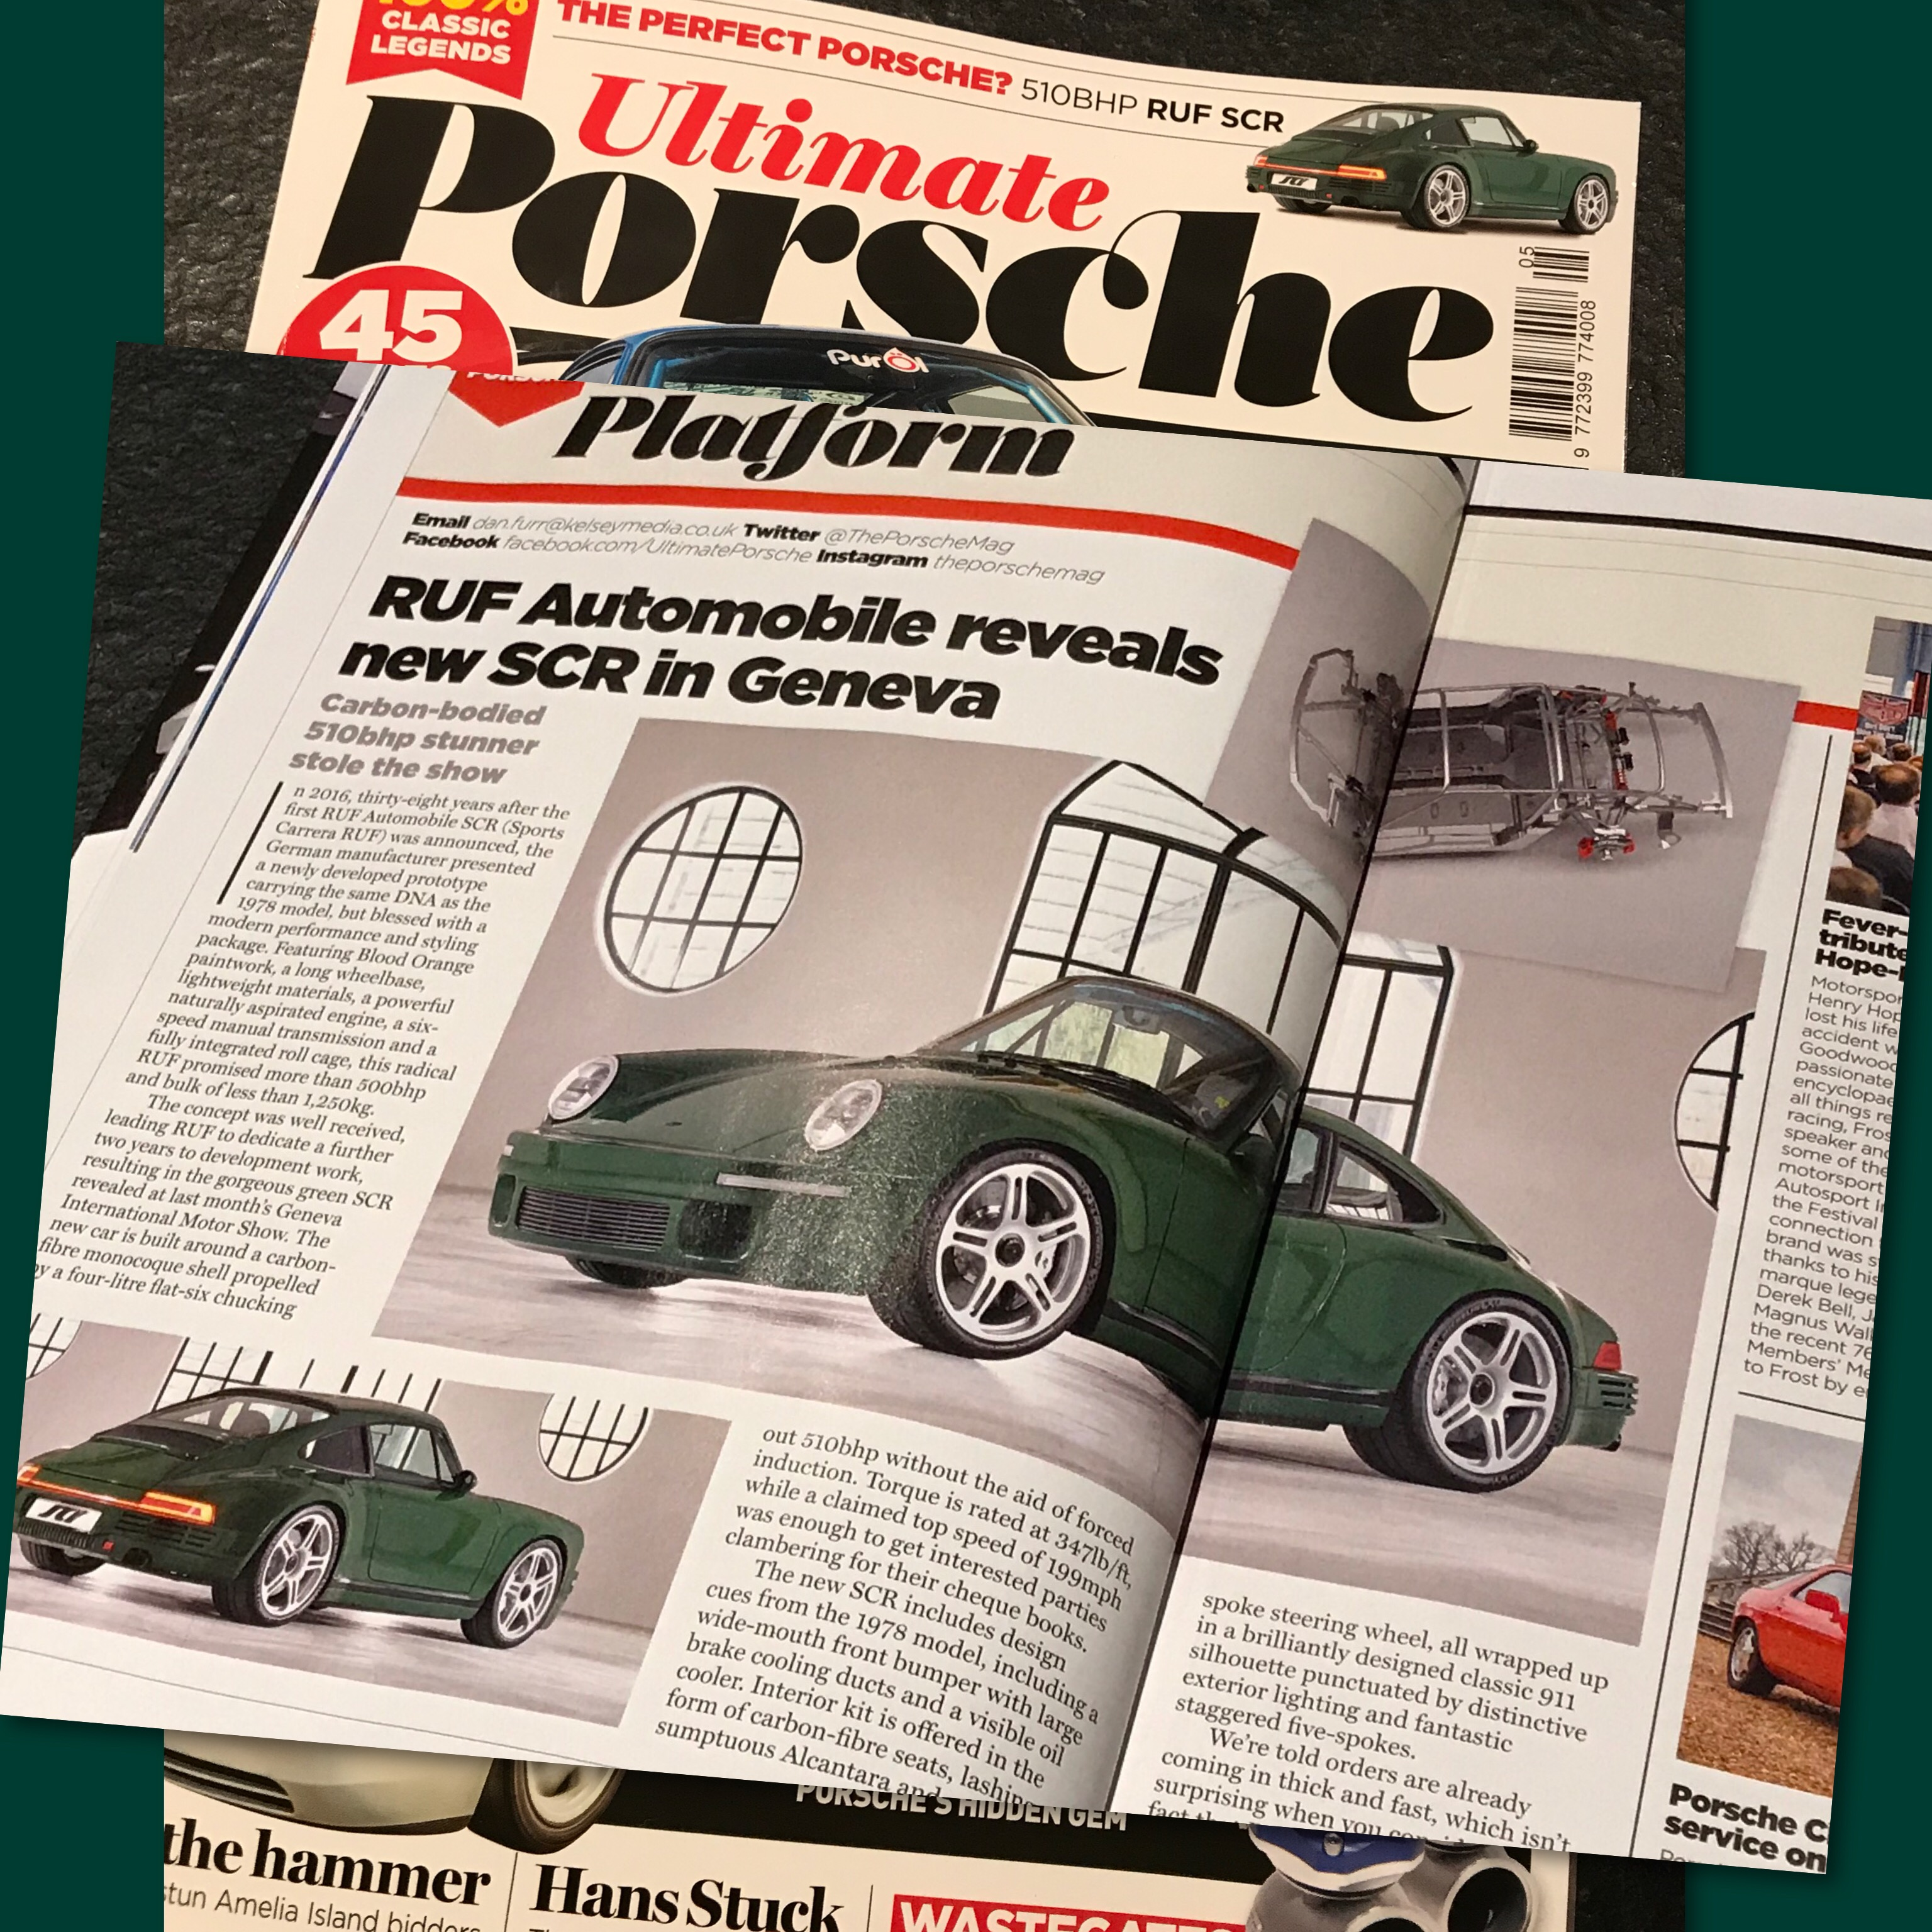 Ultimate Porsche Magazine May 2018